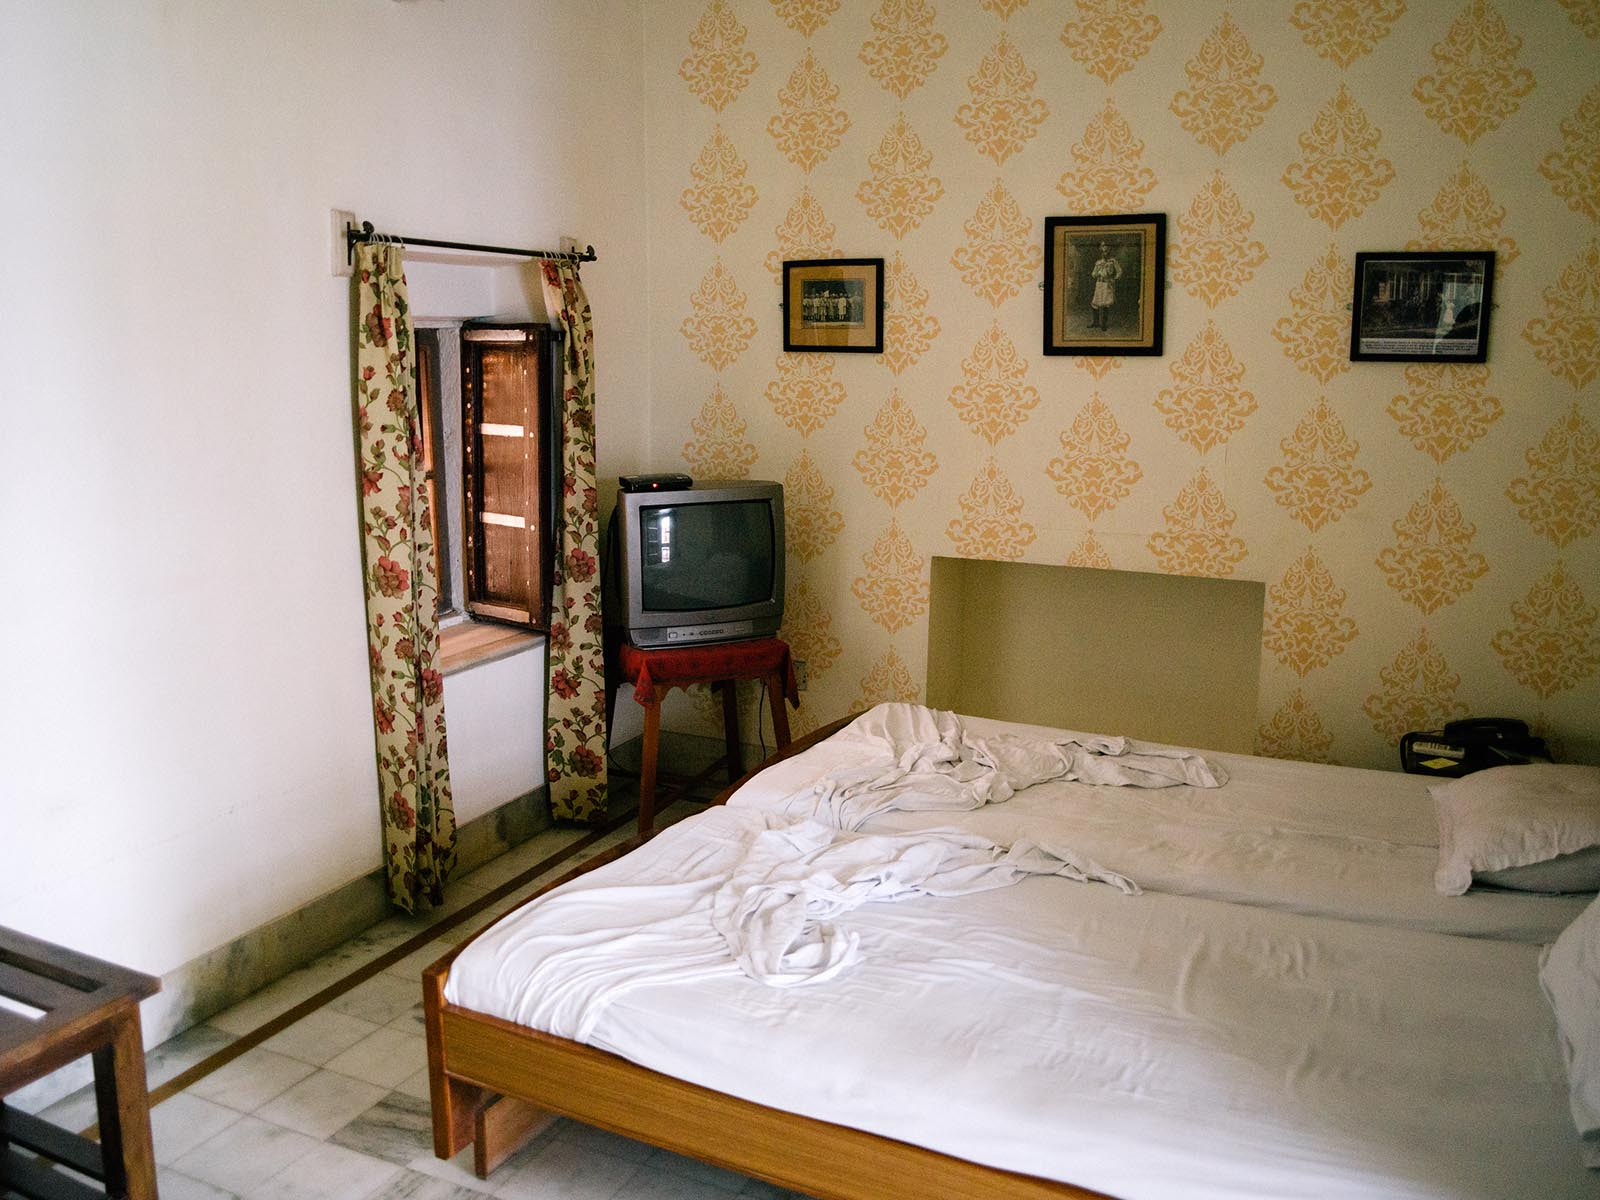 Our room in Bikaner. Photography by  Joris Hermans.